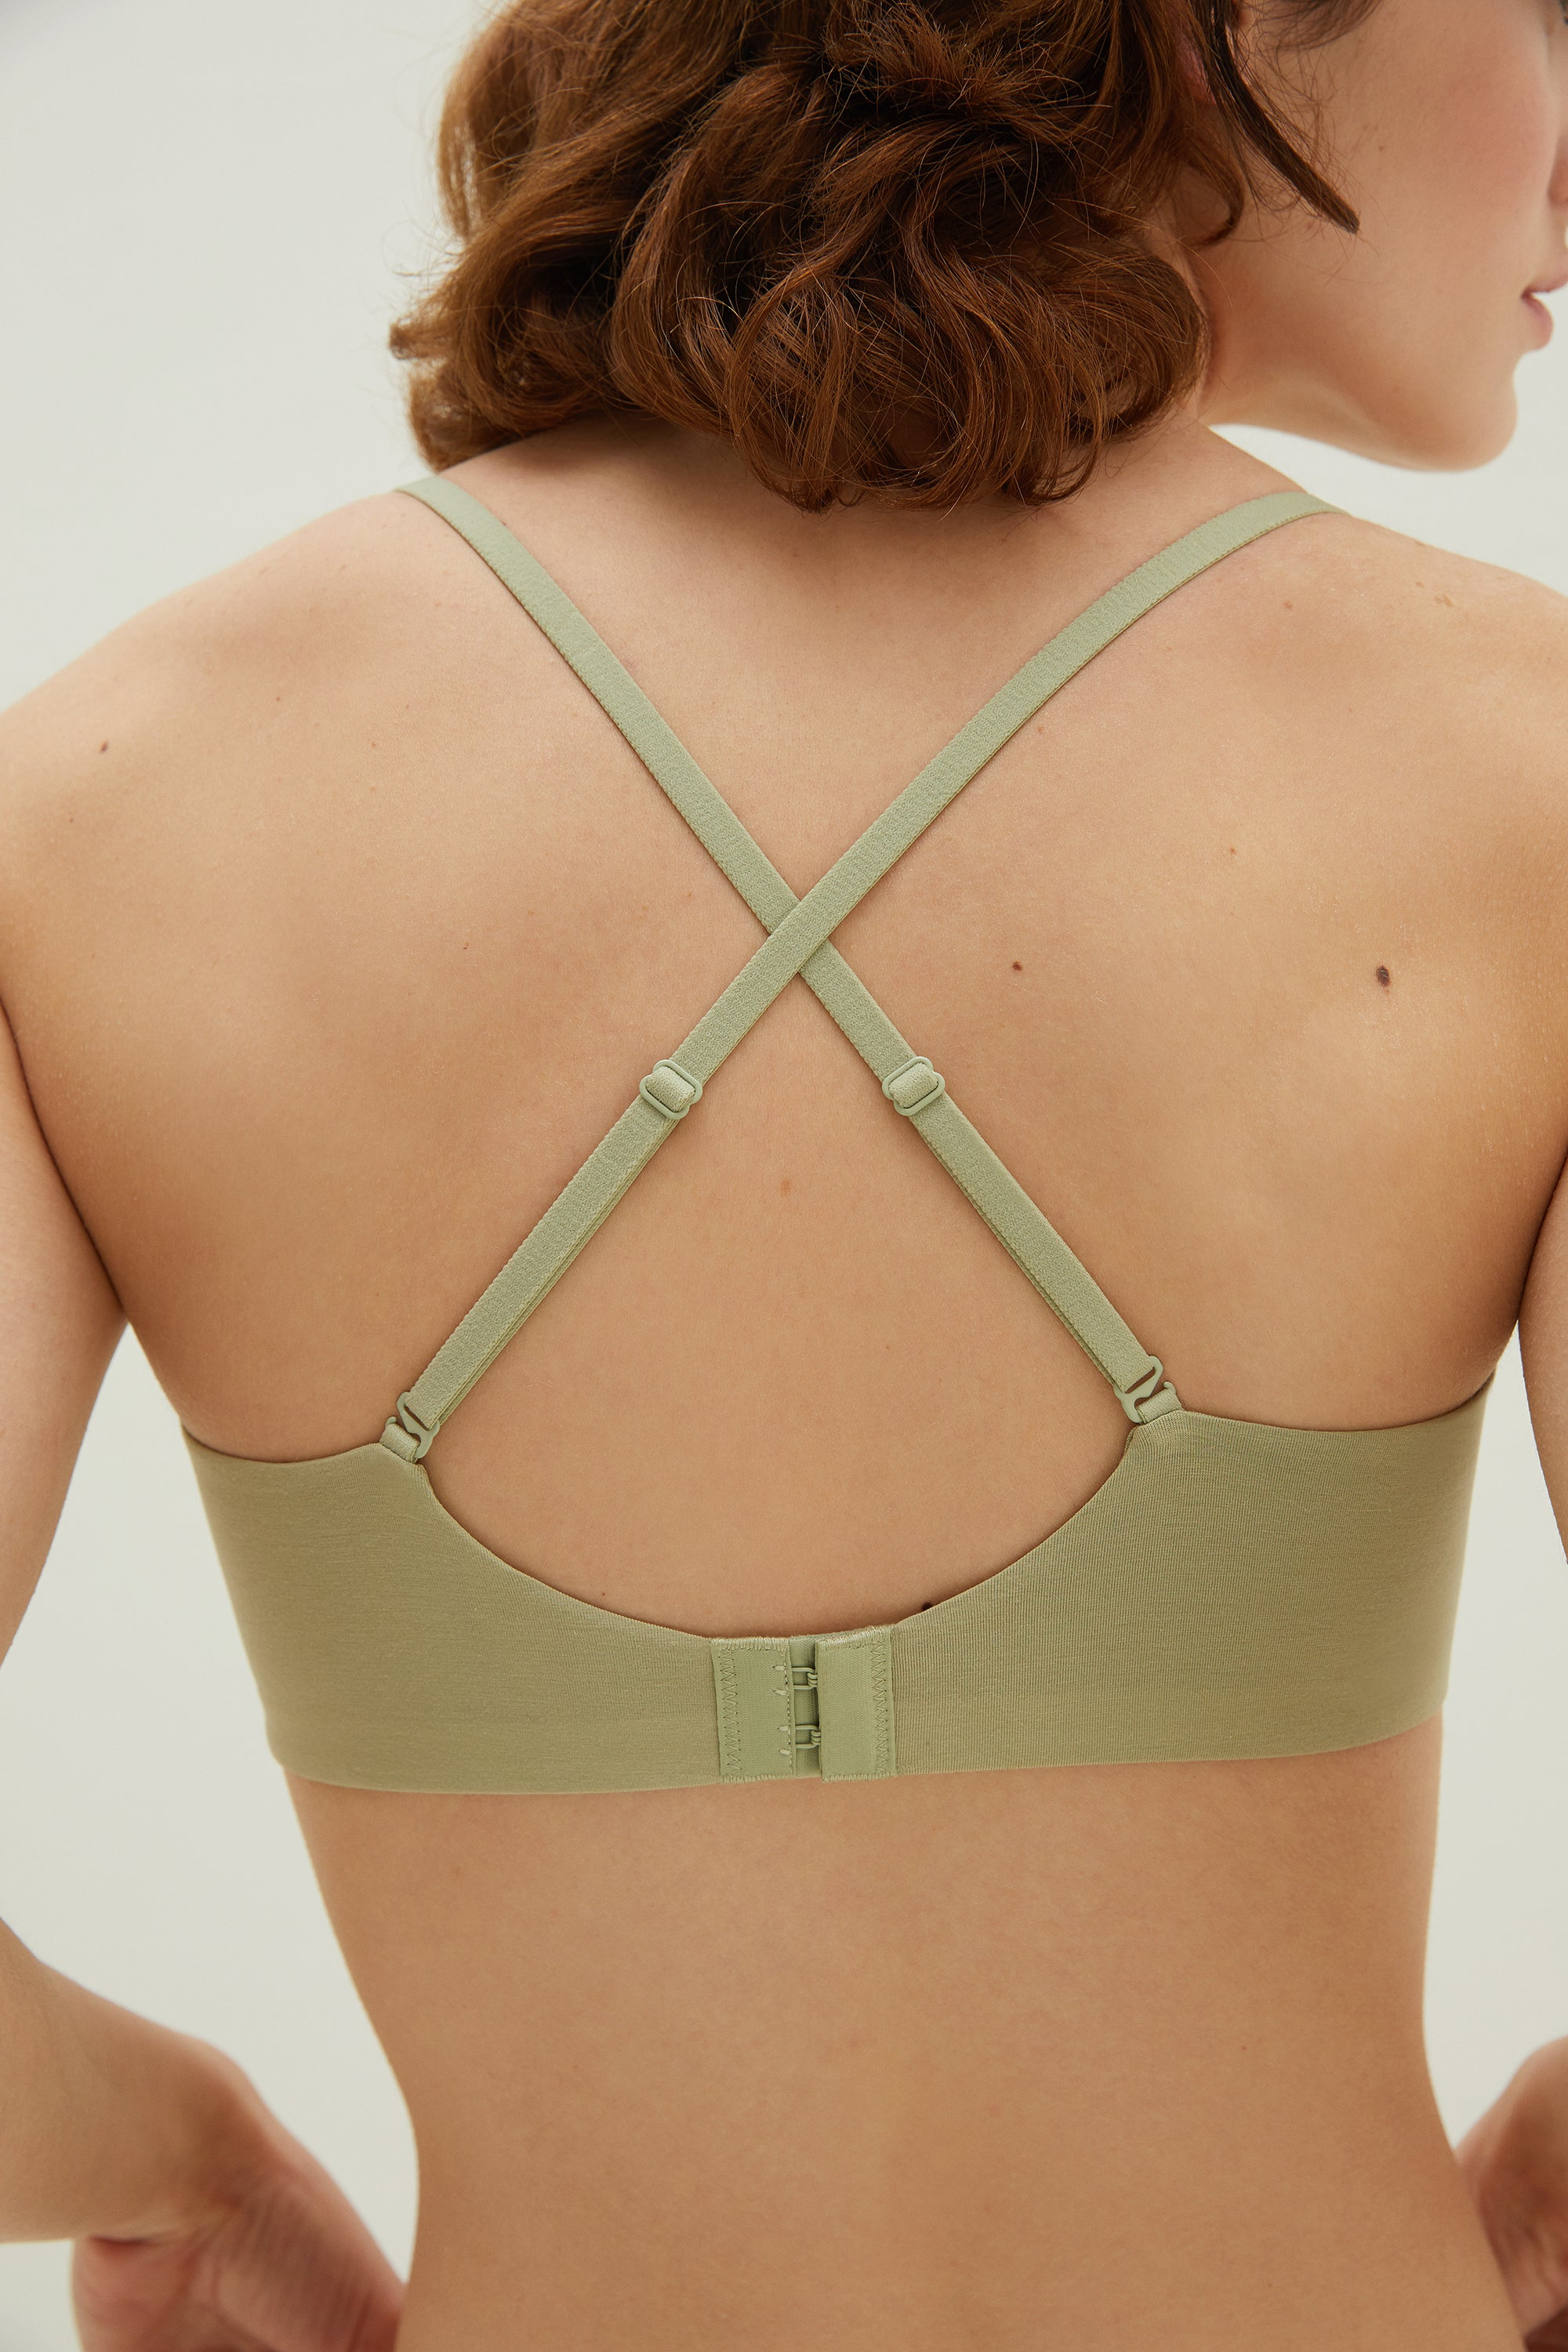 NEIWAI Convertible Soft Modal Bra in Avocado Convertible Straps